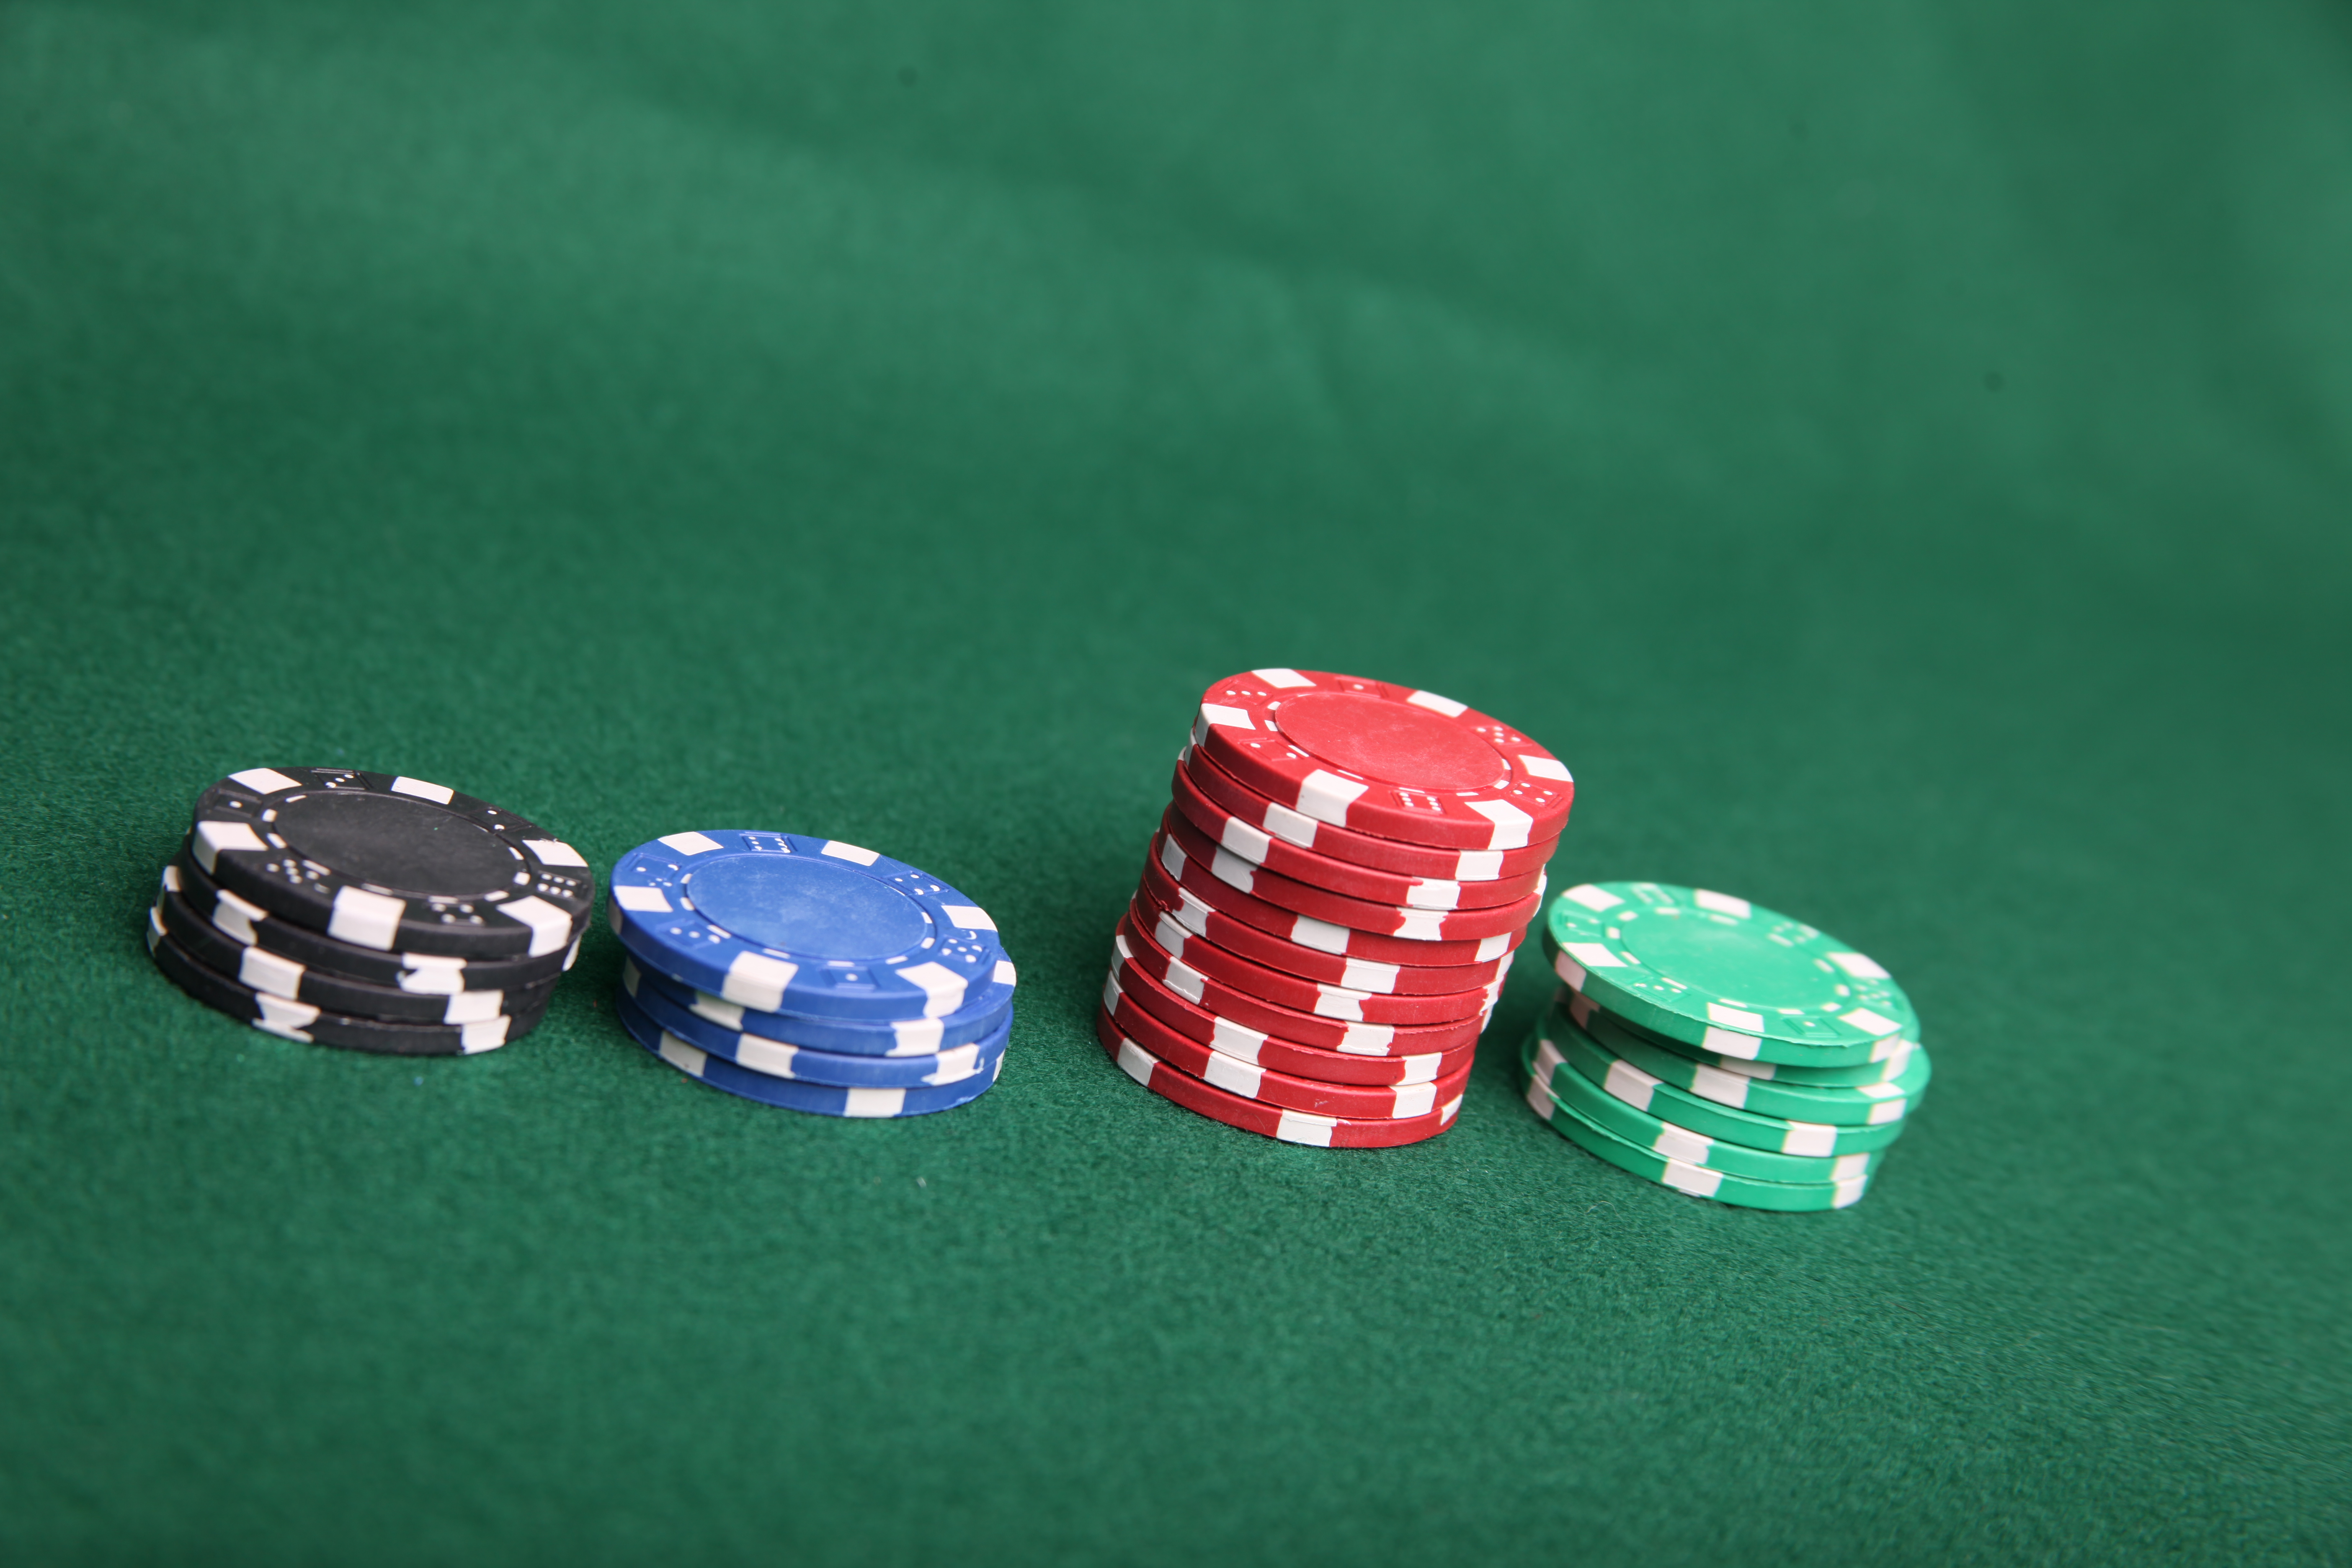 Poker chip stacks, Bet, Black, Blue, Chip, HQ Photo